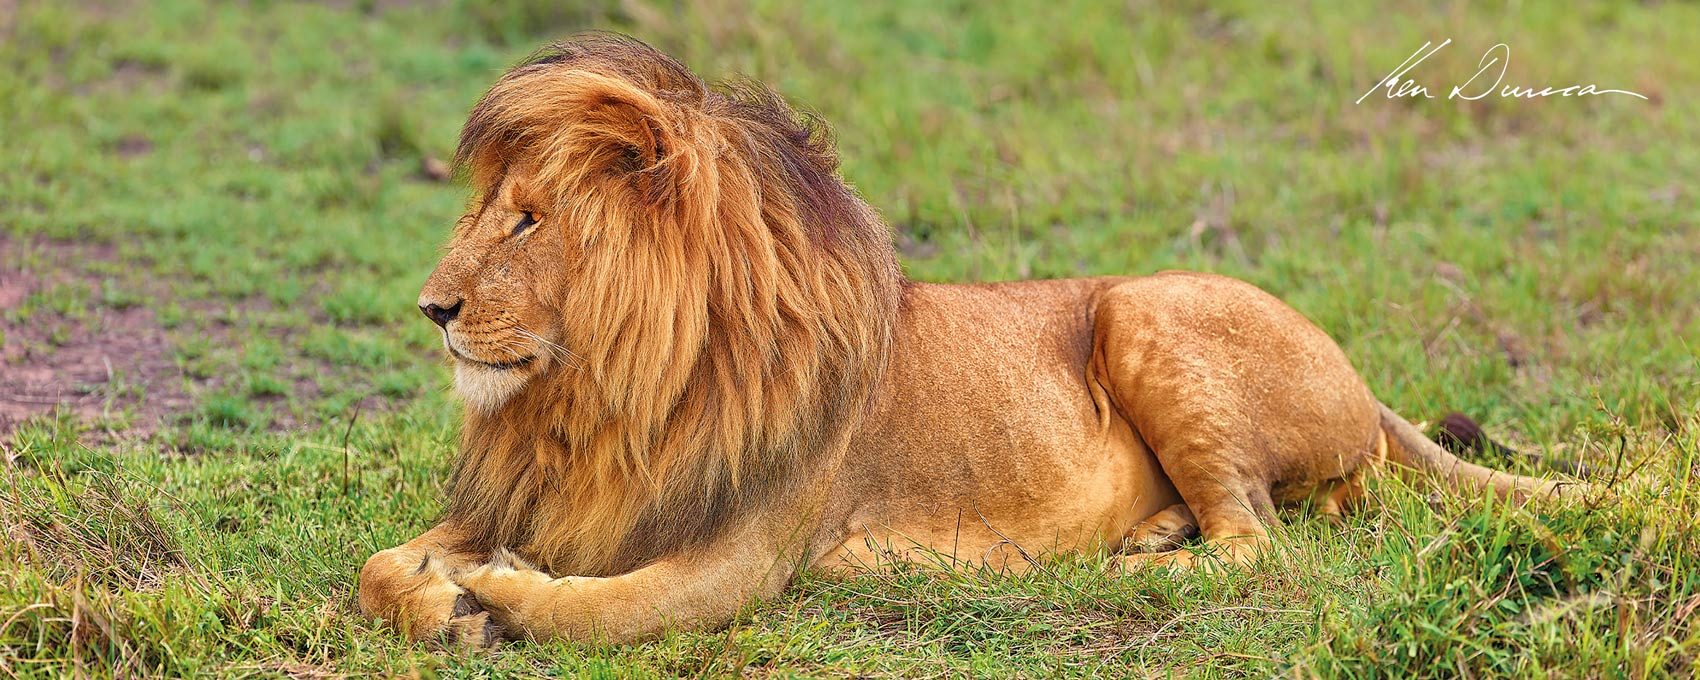 A healthy male Lion lays on the lush green grass just watching and waiting for opportunities